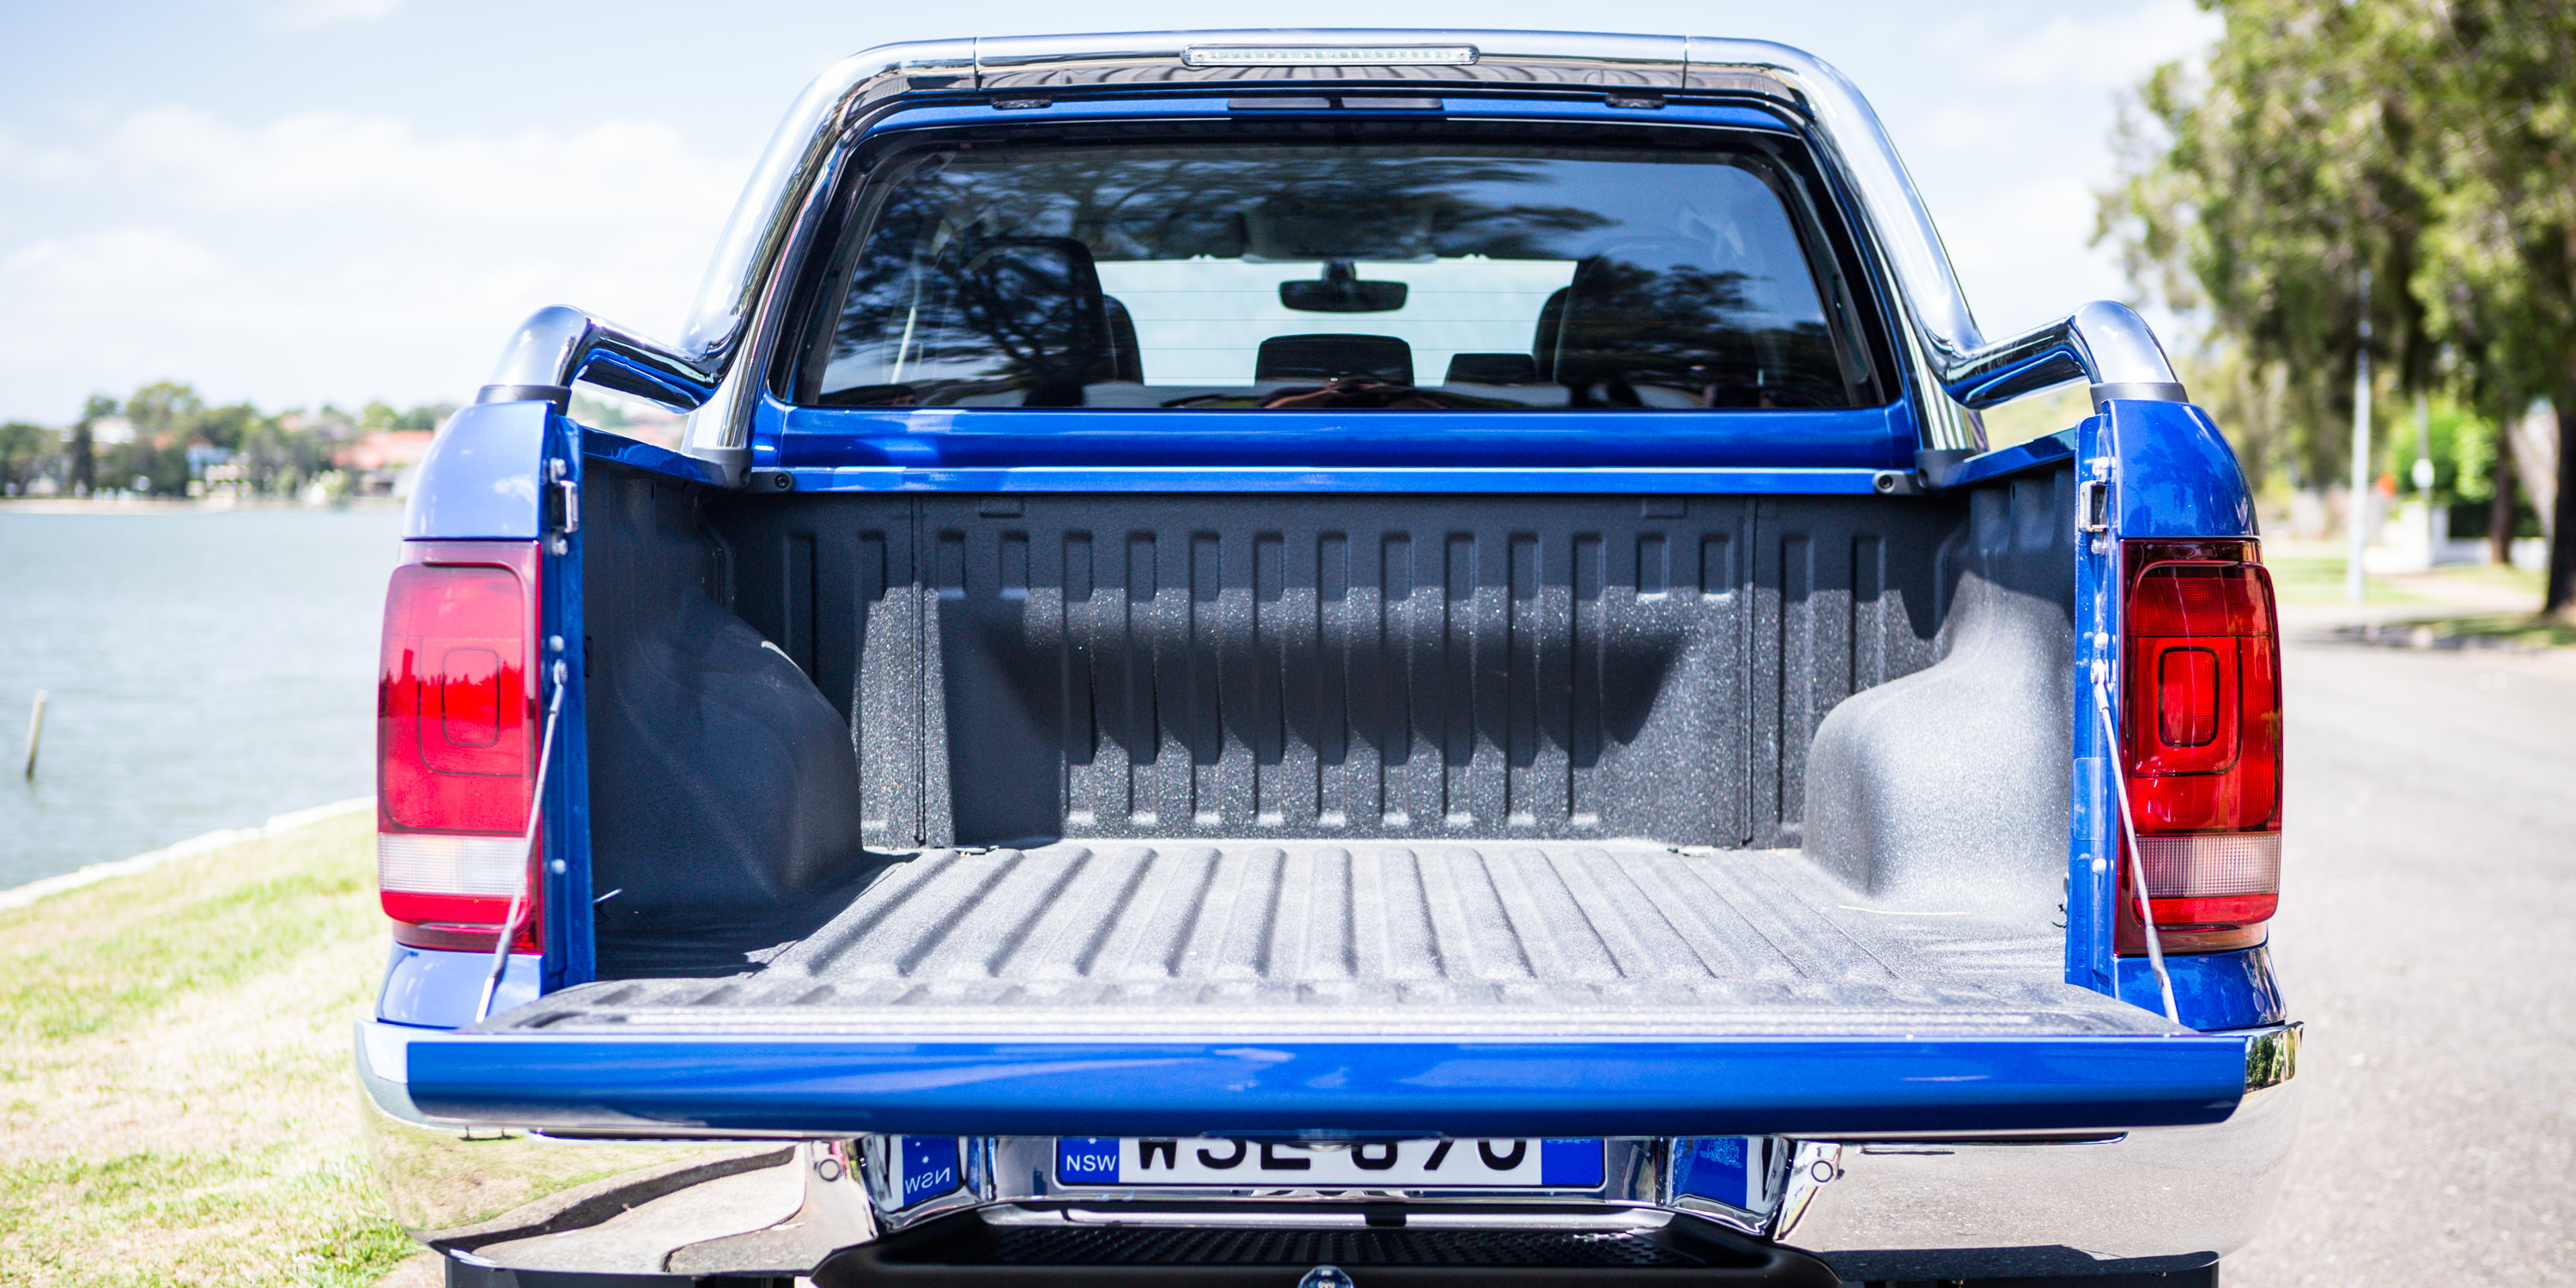 Ute comparison: Which ute has the best tub? | CarAdvice